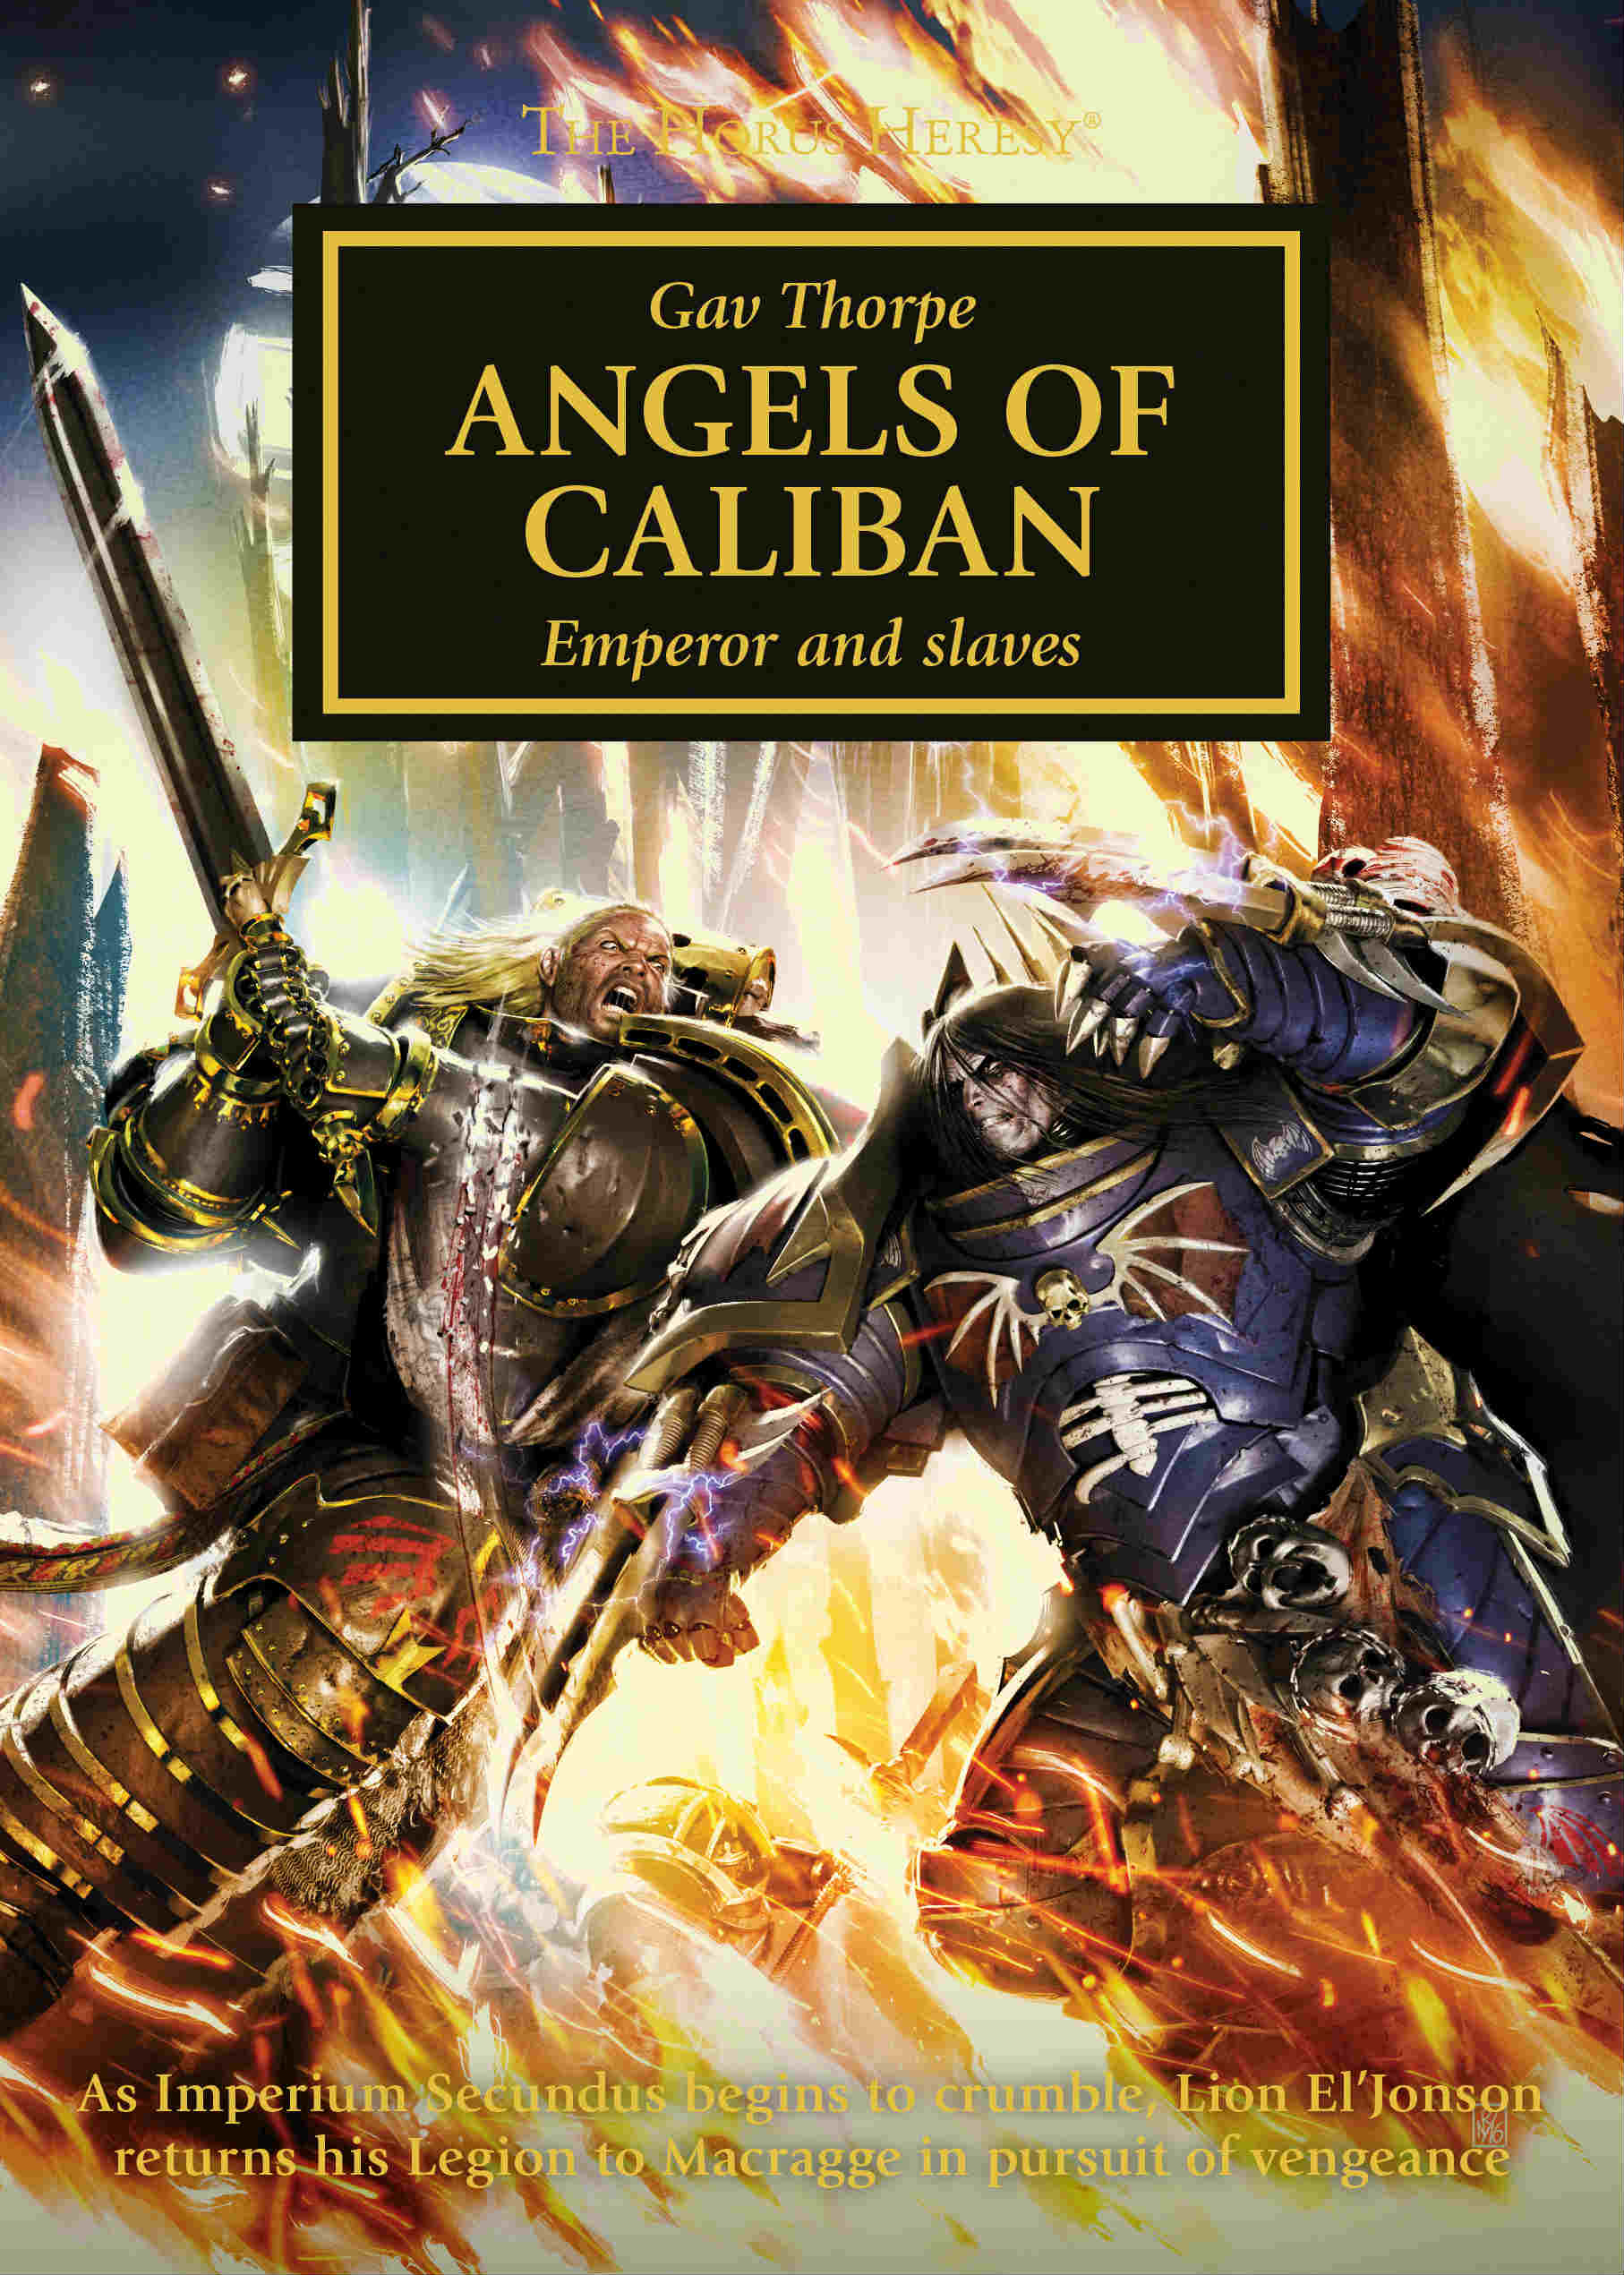 Angels of Caliban – The Story So Far (Spoilers!)